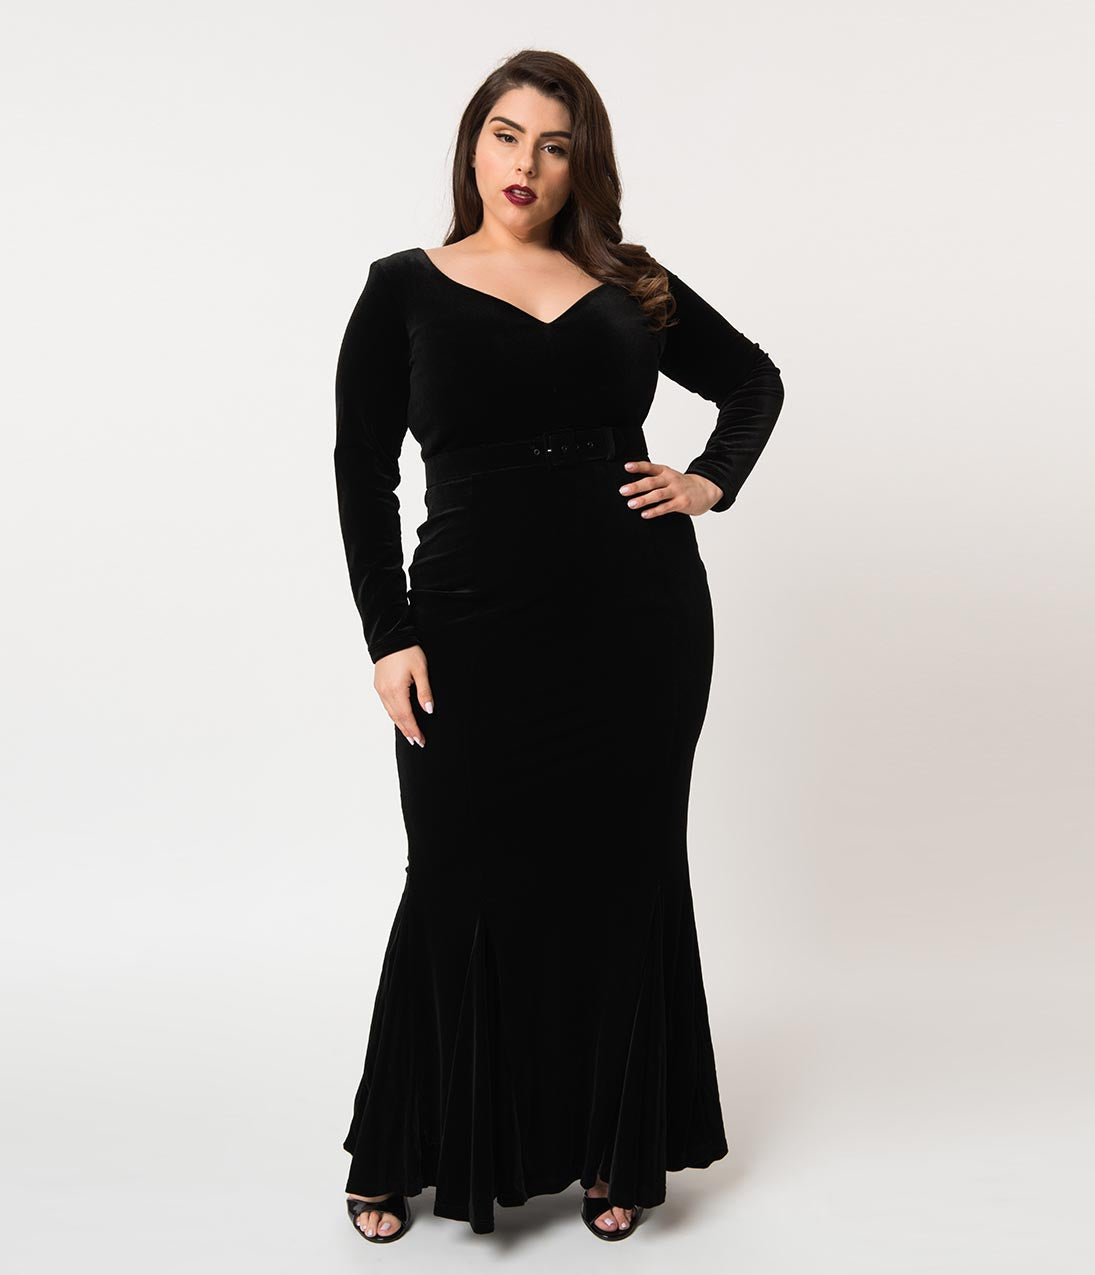 1930s Art Deco Plus Size Dresses | Tea Dresses, Party Dresses La Femme En Noir Plus Size Black Velvet Long Sleeve Mermaid Marilyn Gown $232.00 AT vintagedancer.com